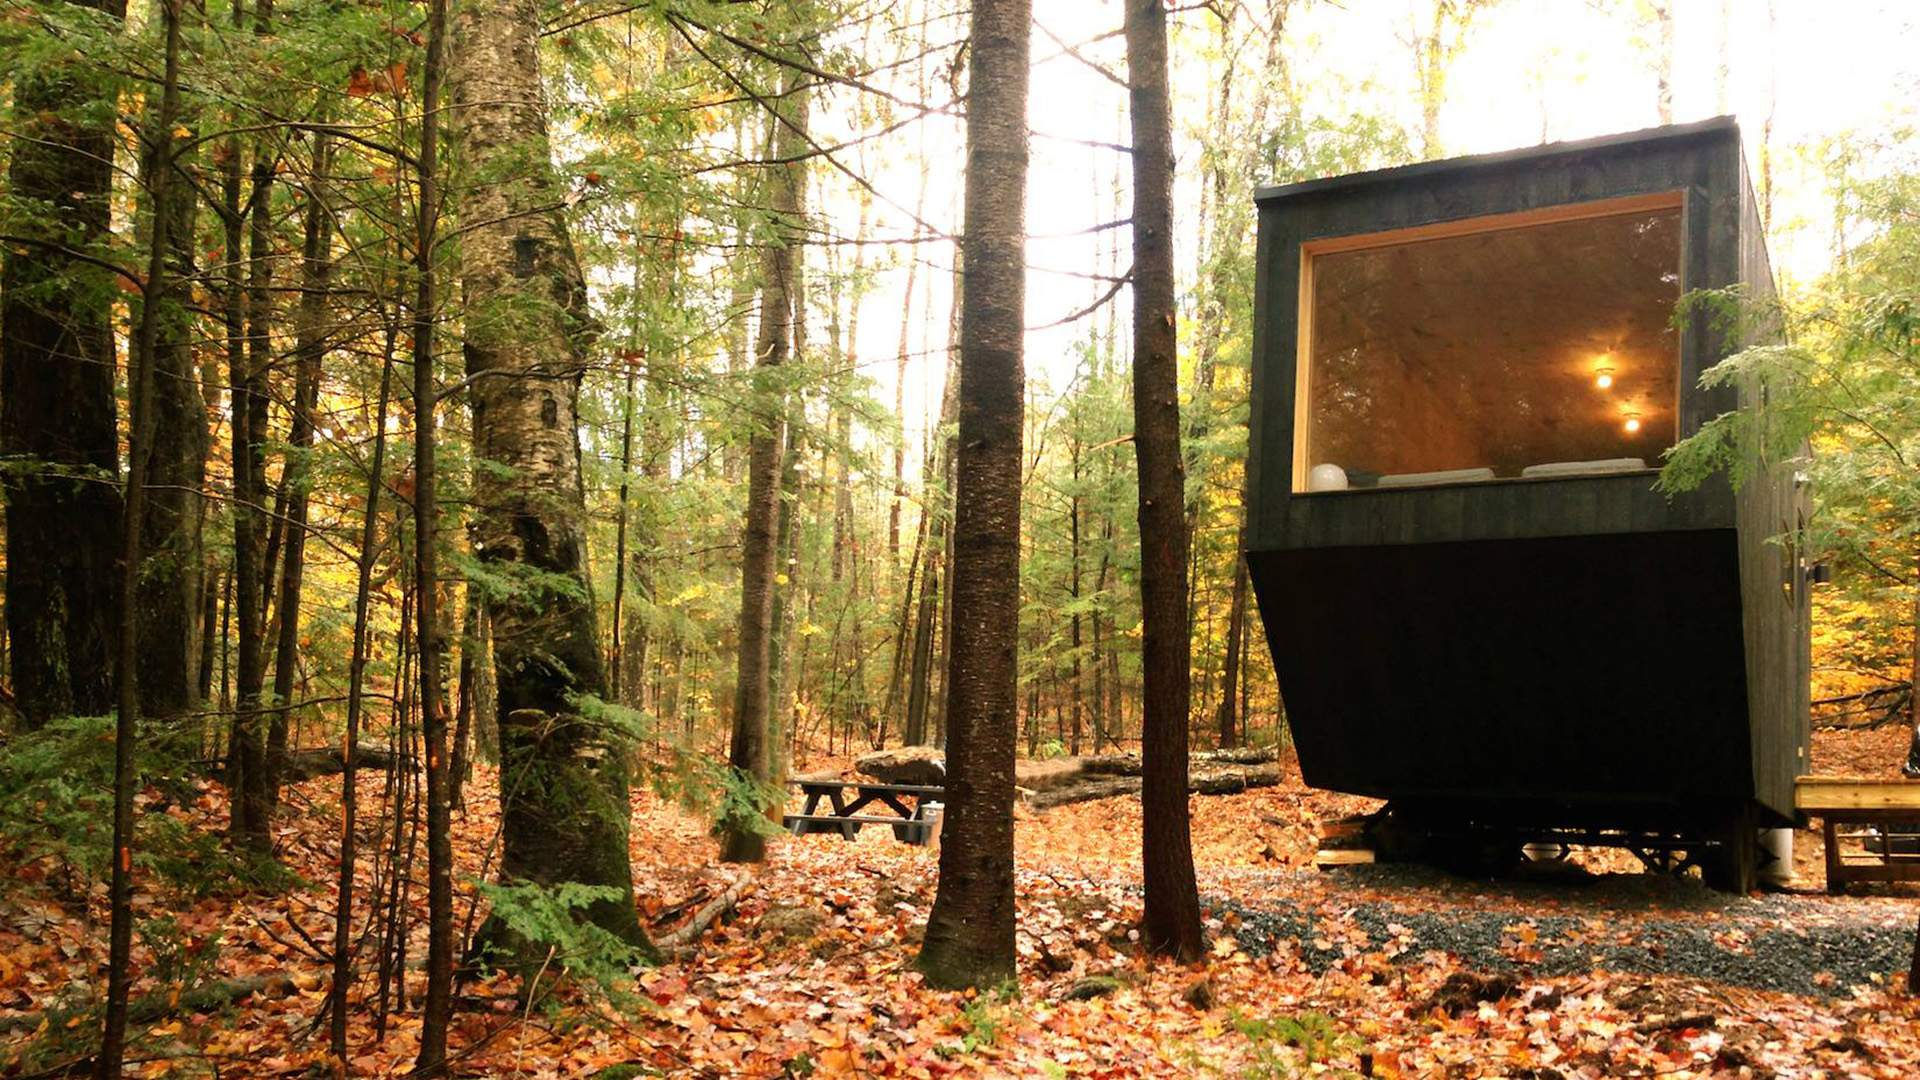 Tiny House Campsites Are Popping up in Secret Locations in the American Wilderness